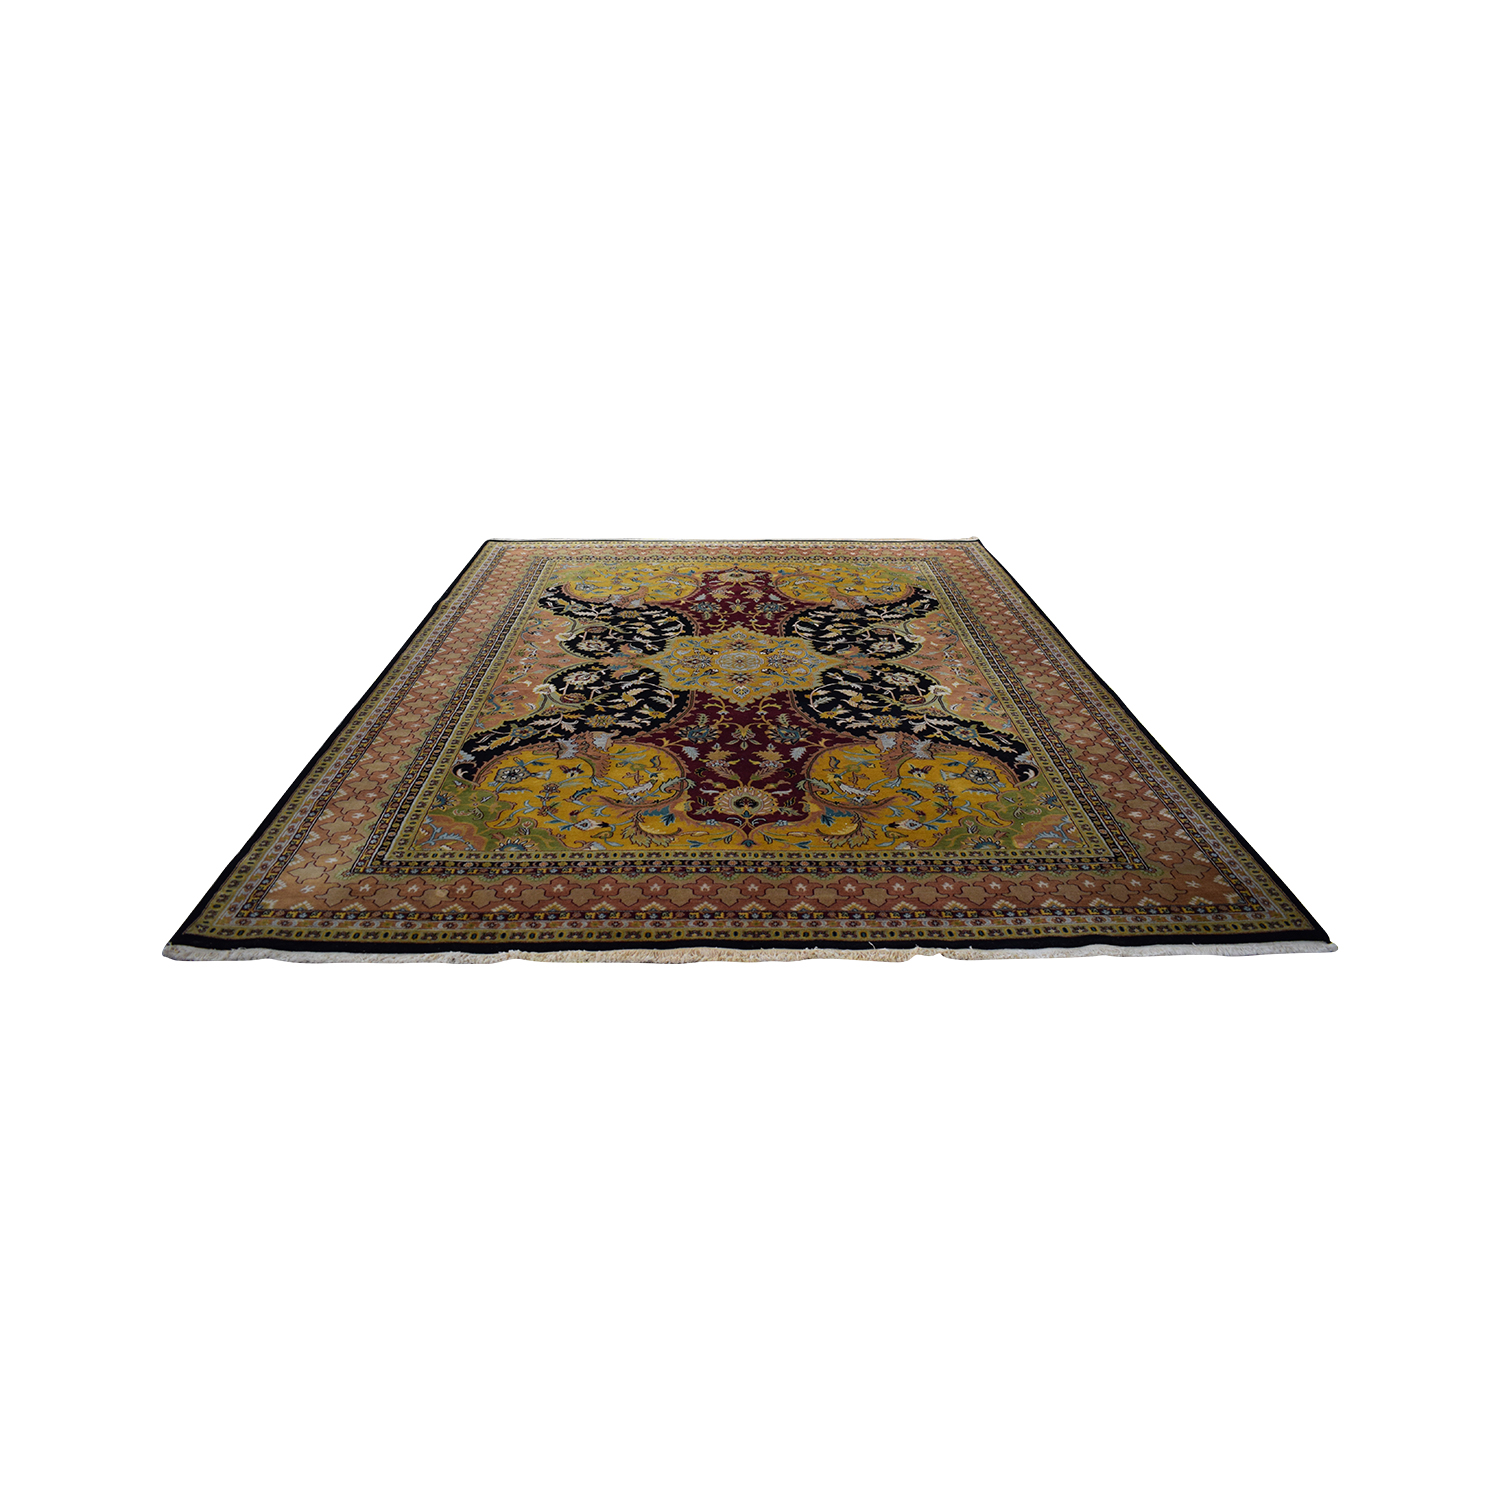 ABC Carpet & Home ABC Carpet & Home 9x12 Persian Rug discount